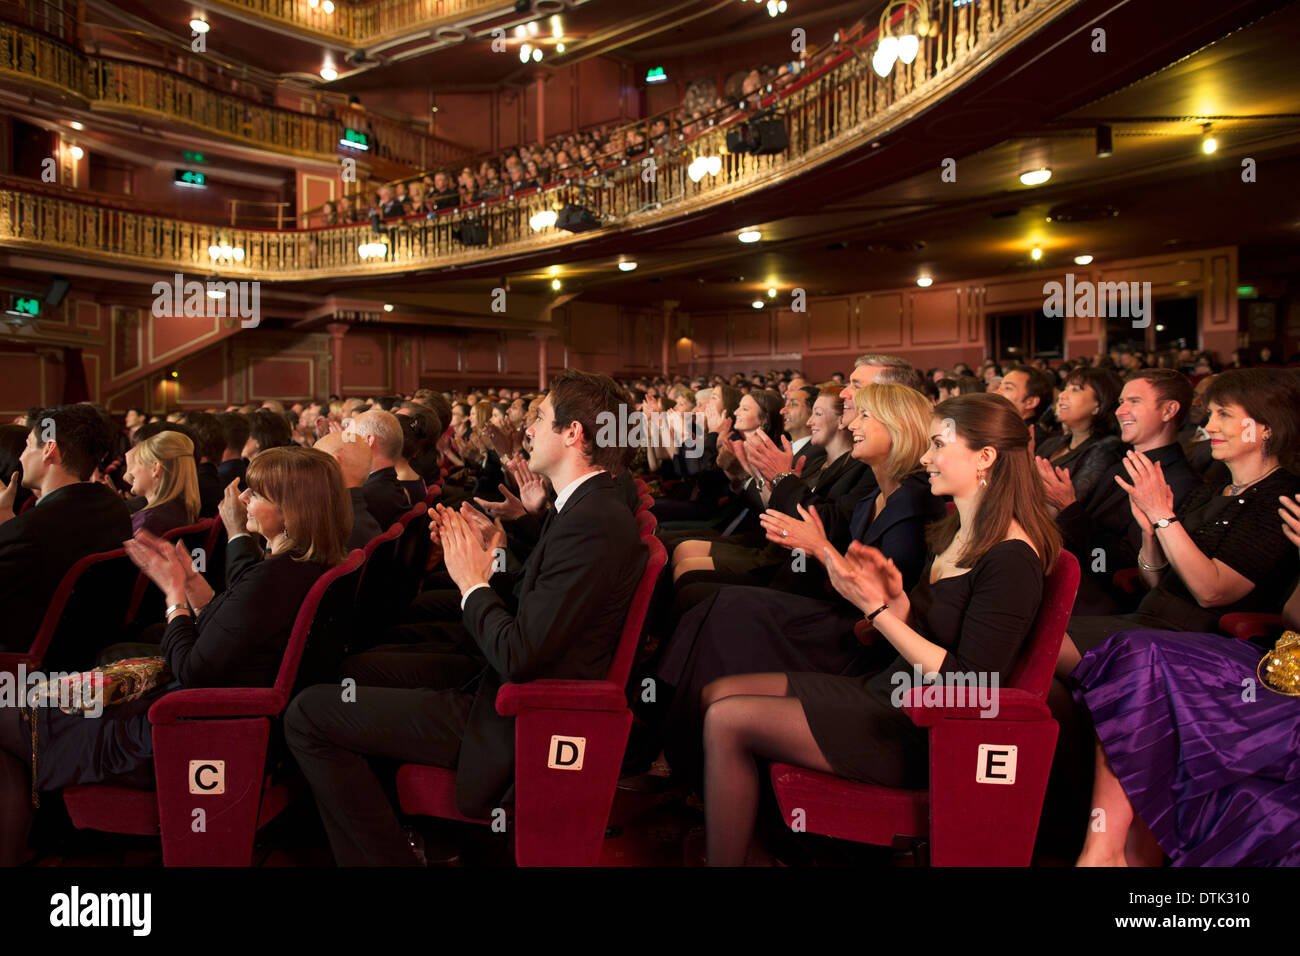 Audience applauding in theater - Stock Image